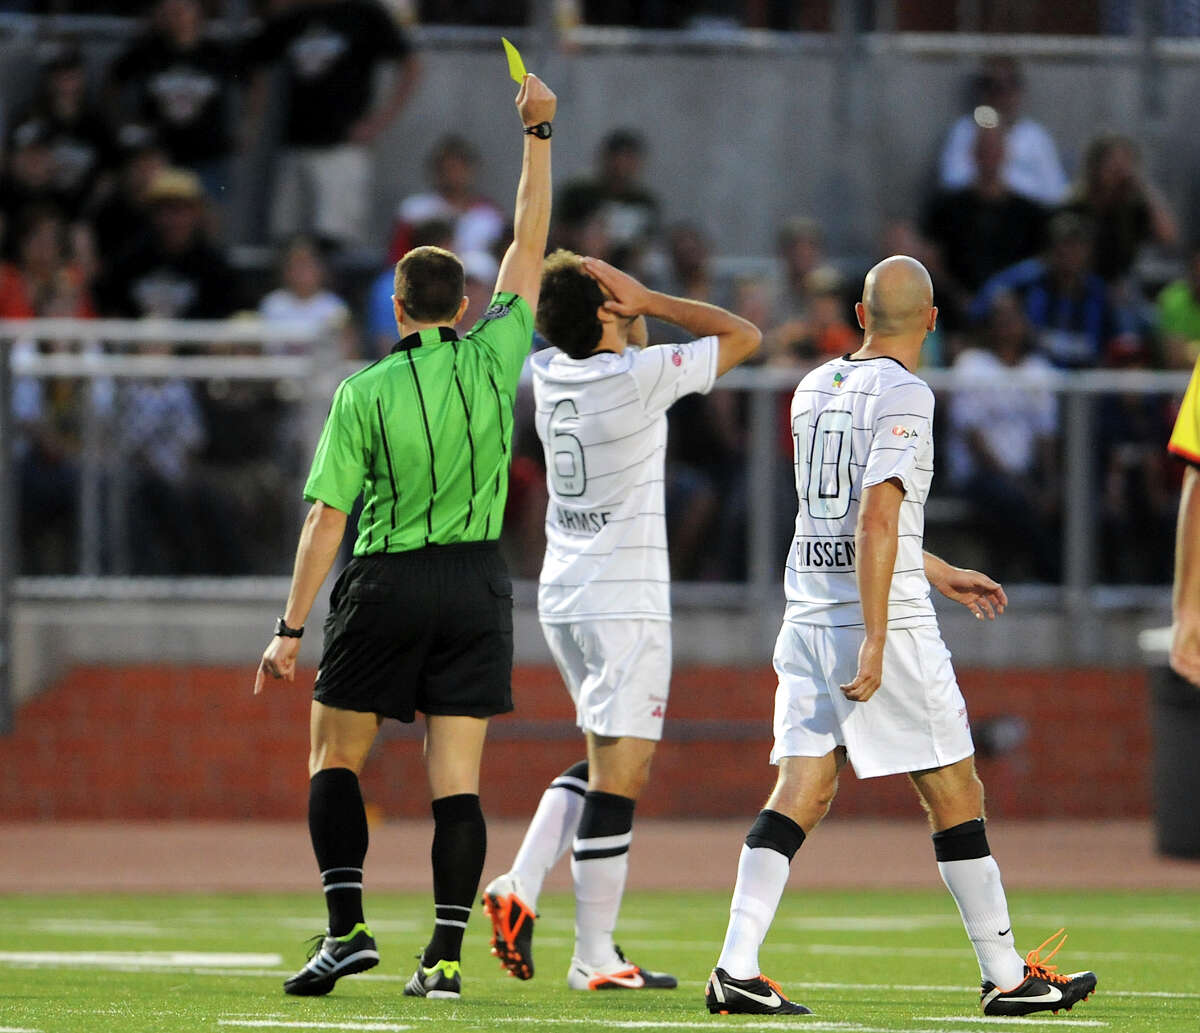 The Scorpions' Kevin Harmse (6) is given a yellow card by the referee during a match against the Fort Lauderdale Strikers on Saturday, April 21, 2012 at Heroes Stadium.